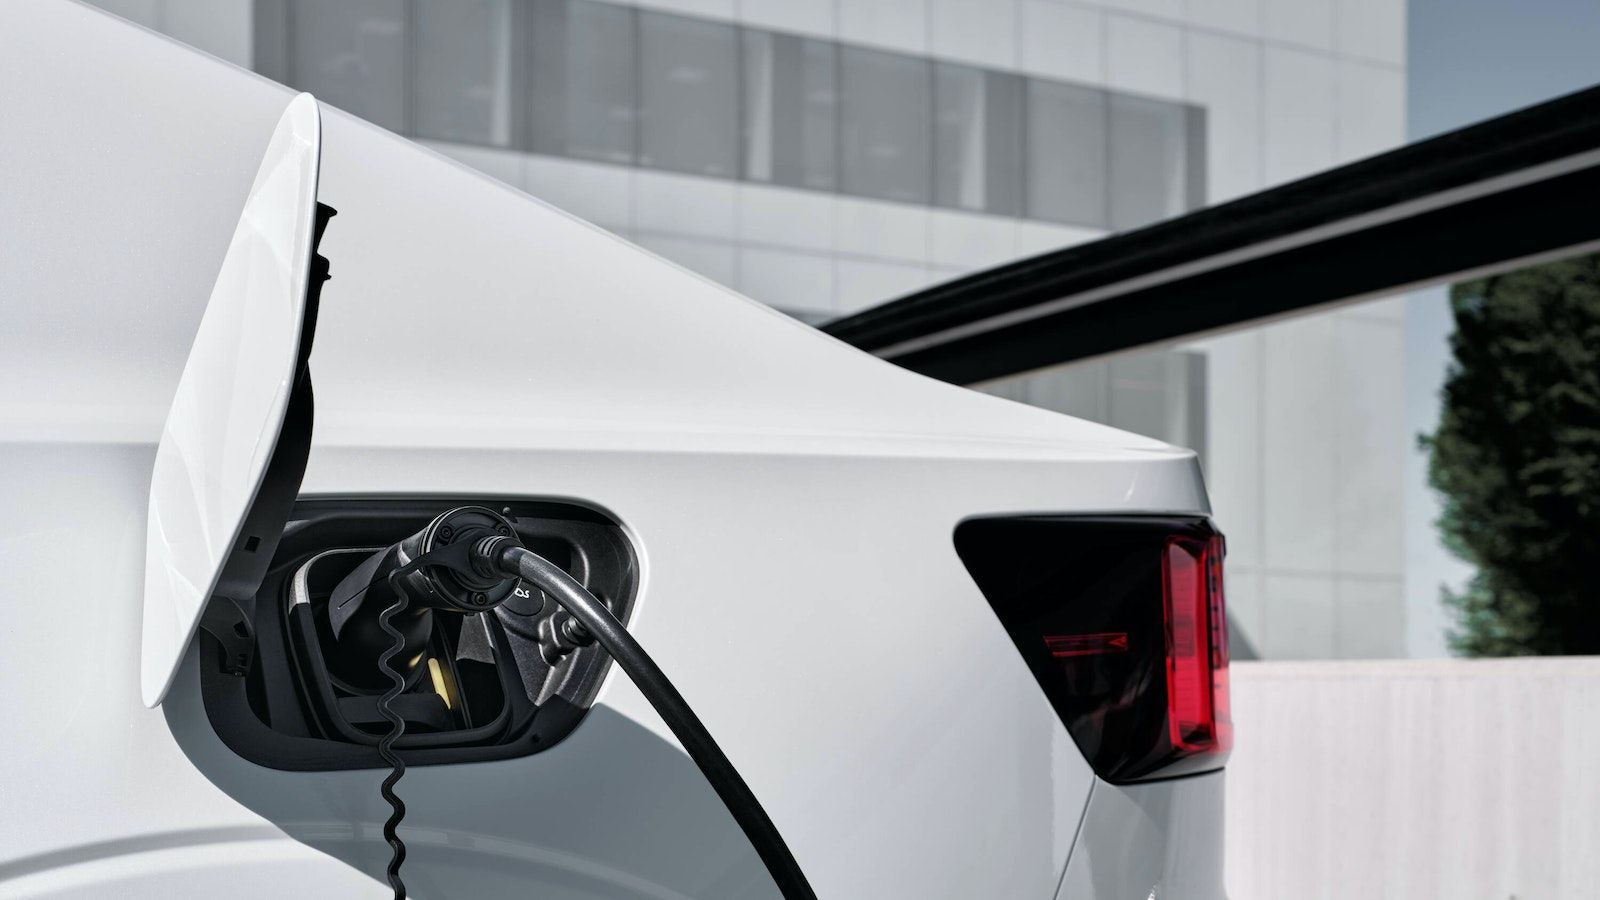 Polestar and ChargePoint will discuss software and how it affects the electric driving experience